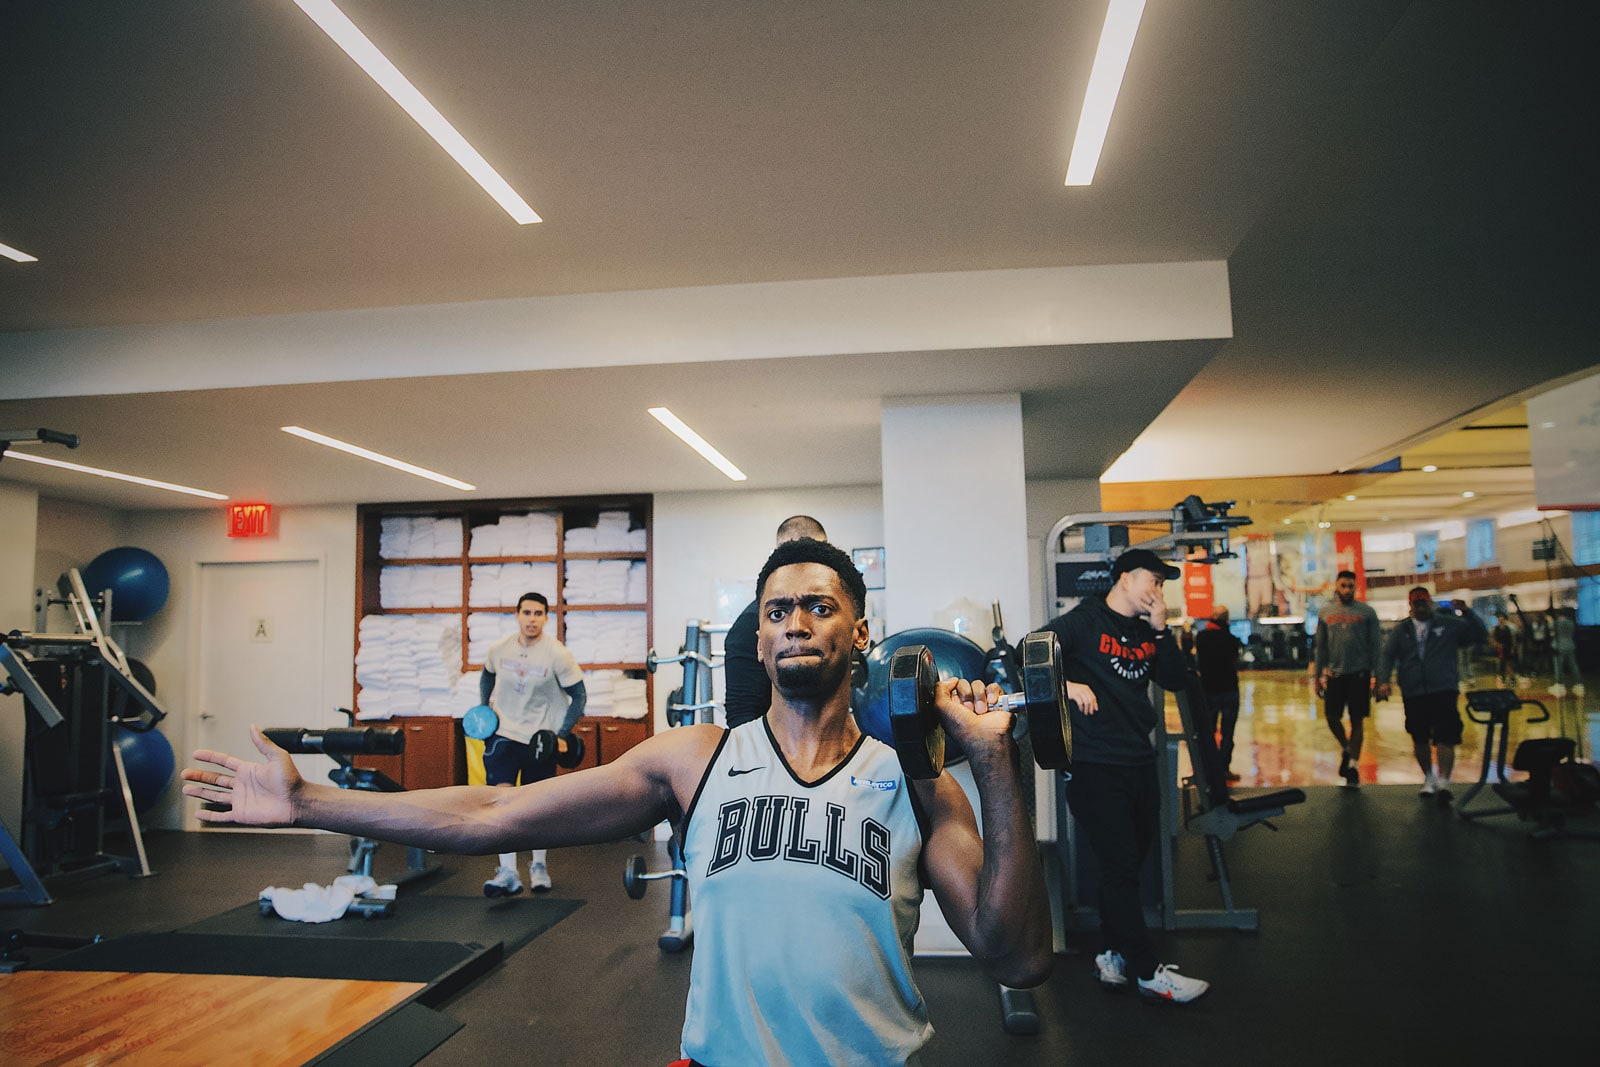 Bobby Portis training with weights at the Advocate Center